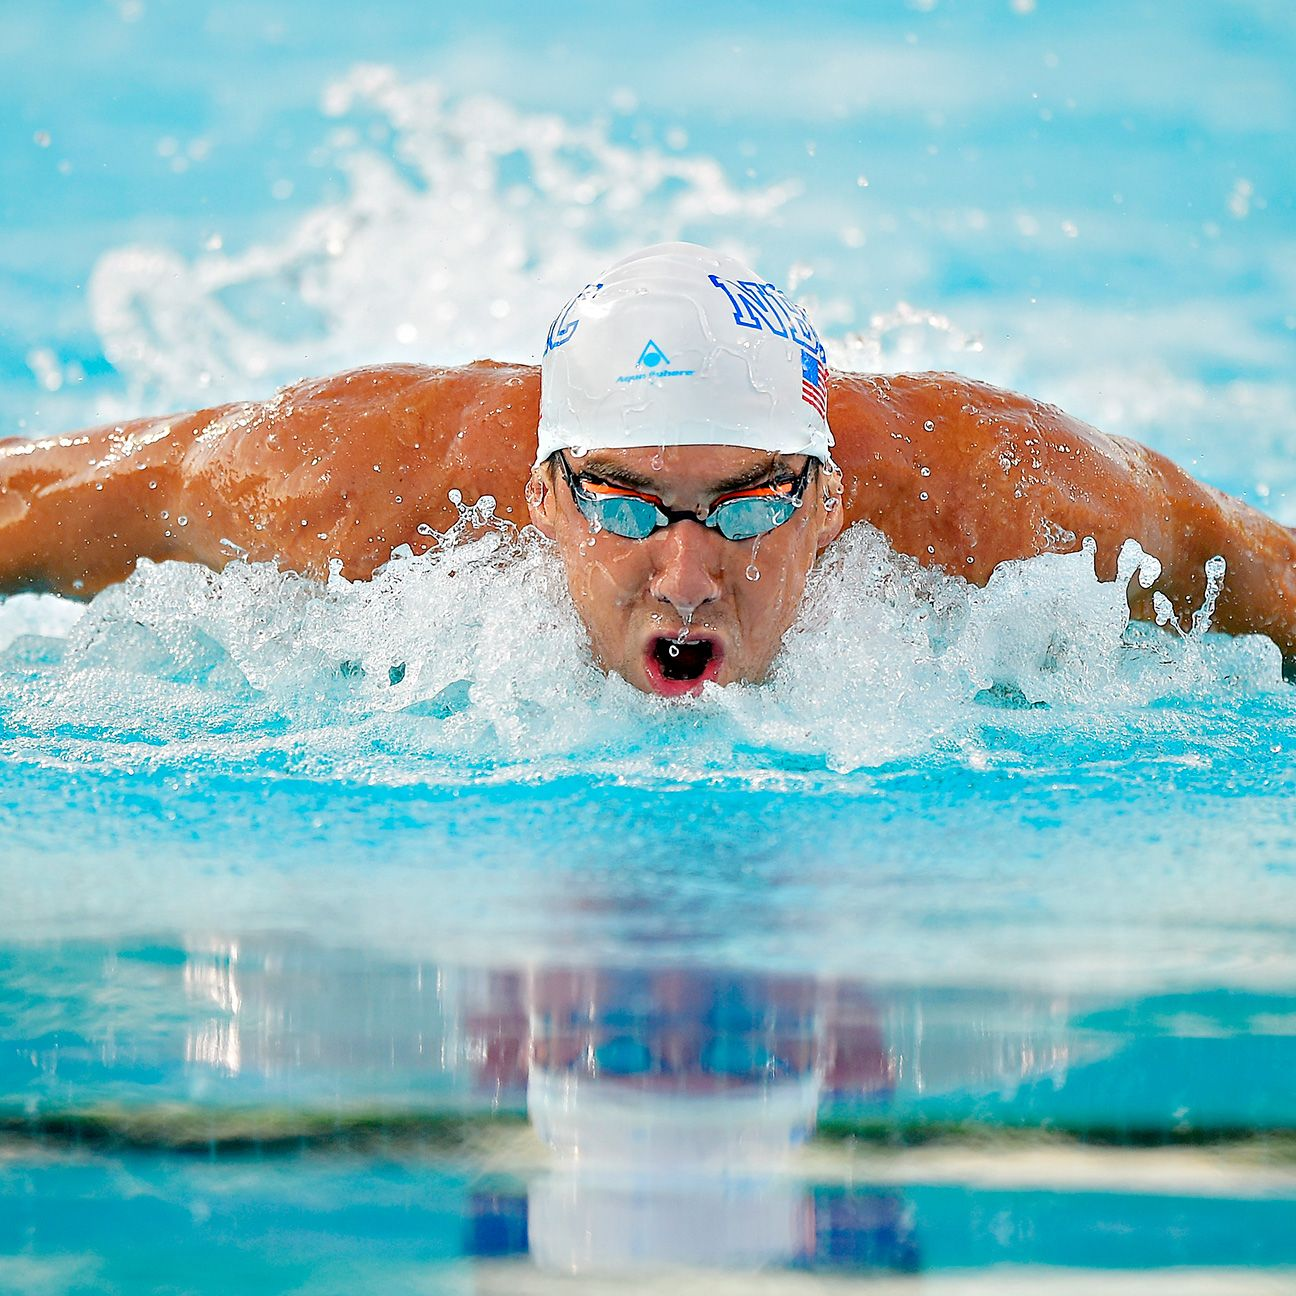 Arizona Gold Swimming: Michael Phelps Wins Gold Medal In 100-meter Butterfly At